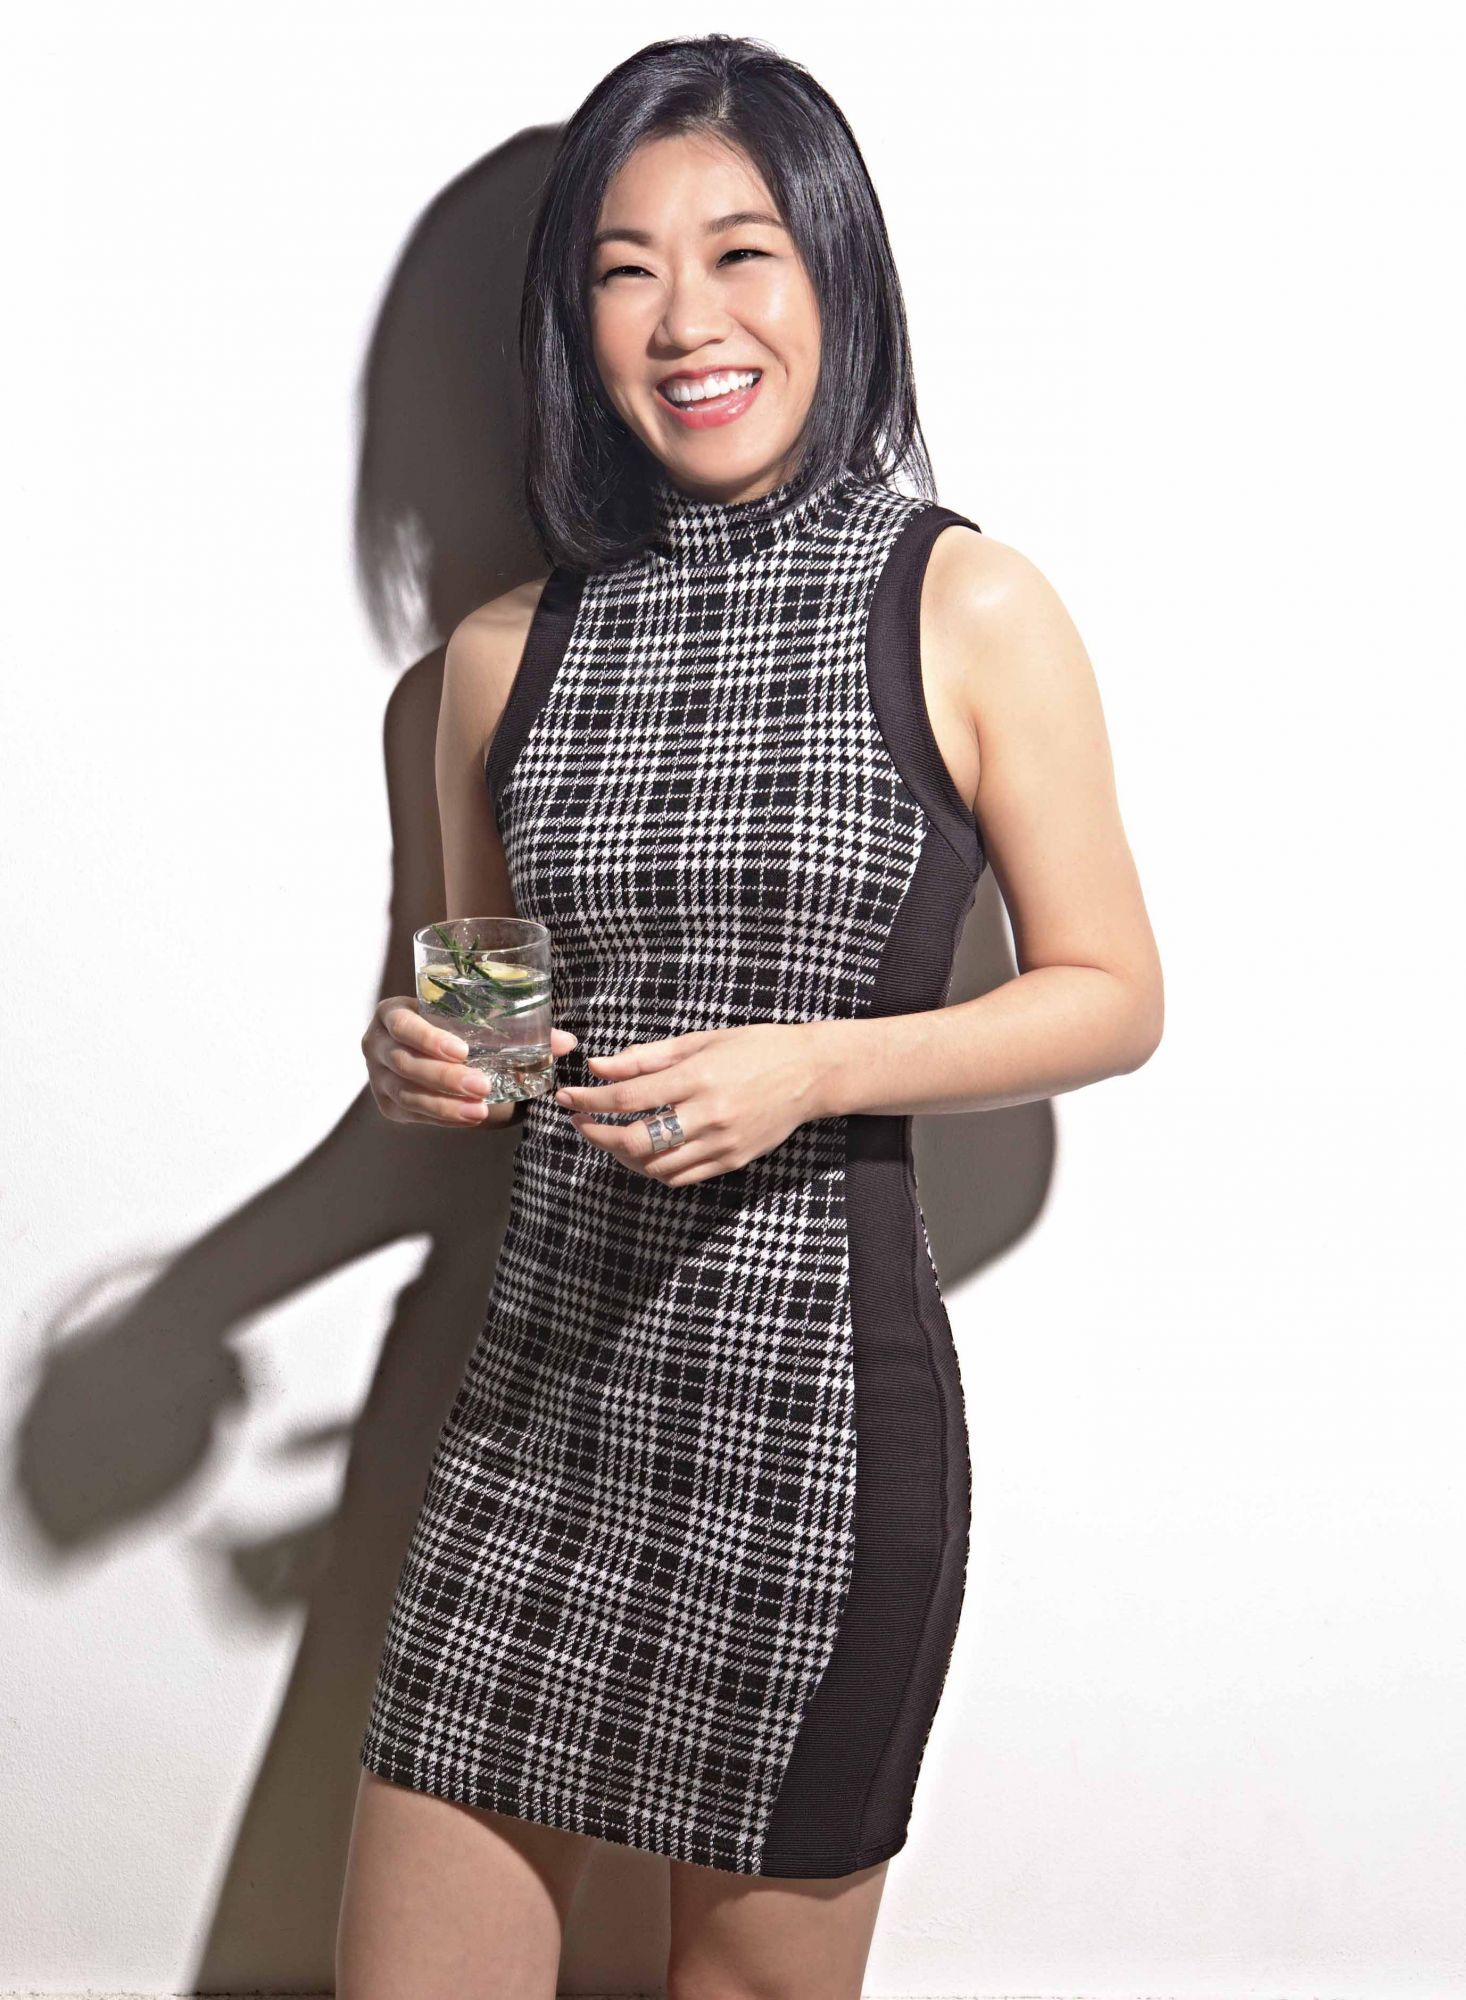 A Drink With... Karen Tan